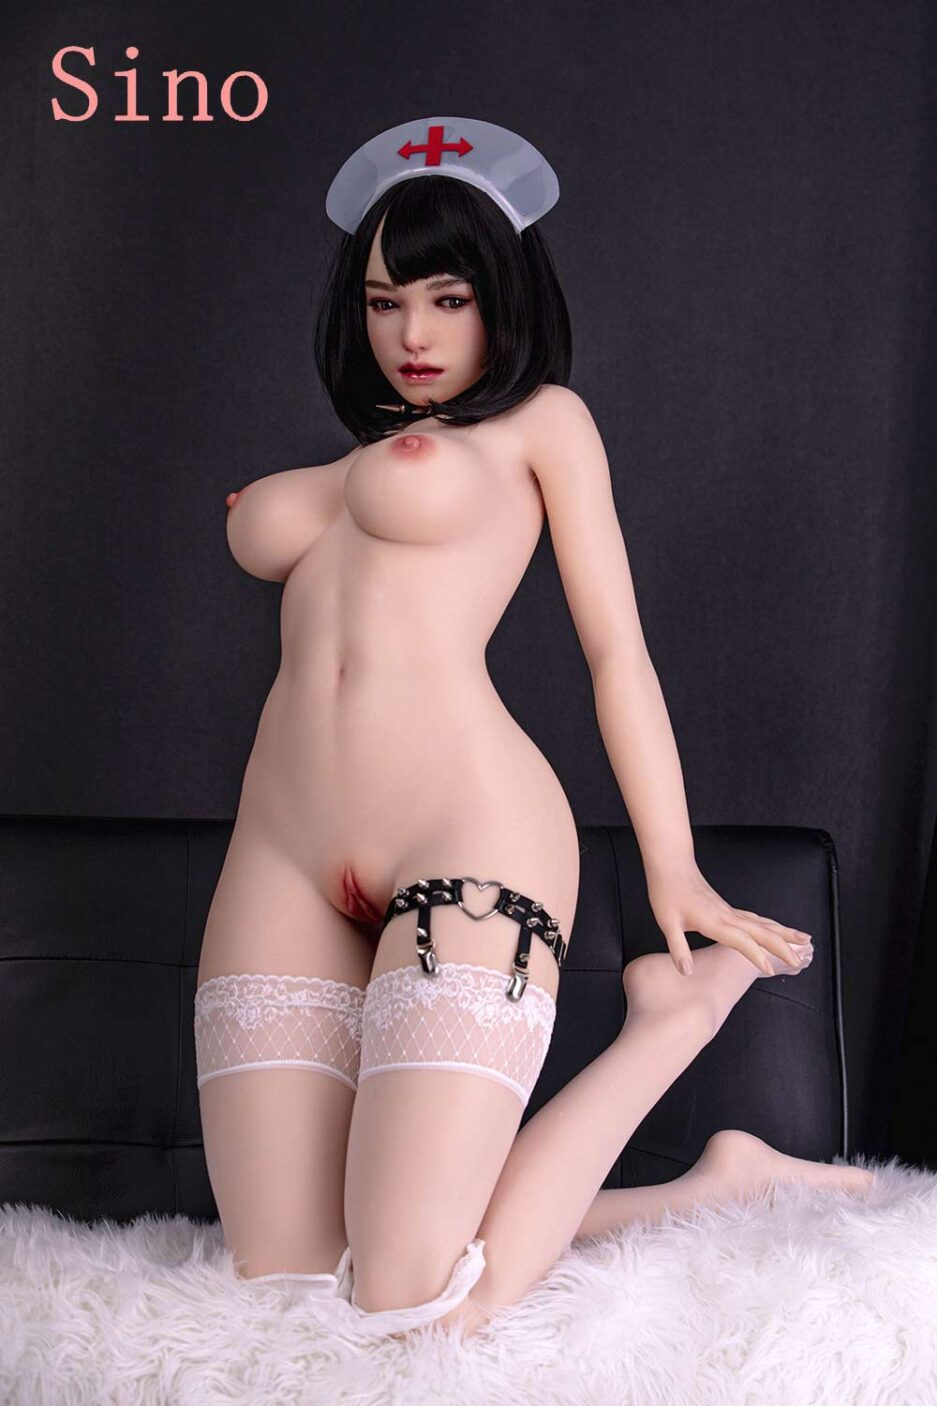 Silicone sex doll with hands touching feet